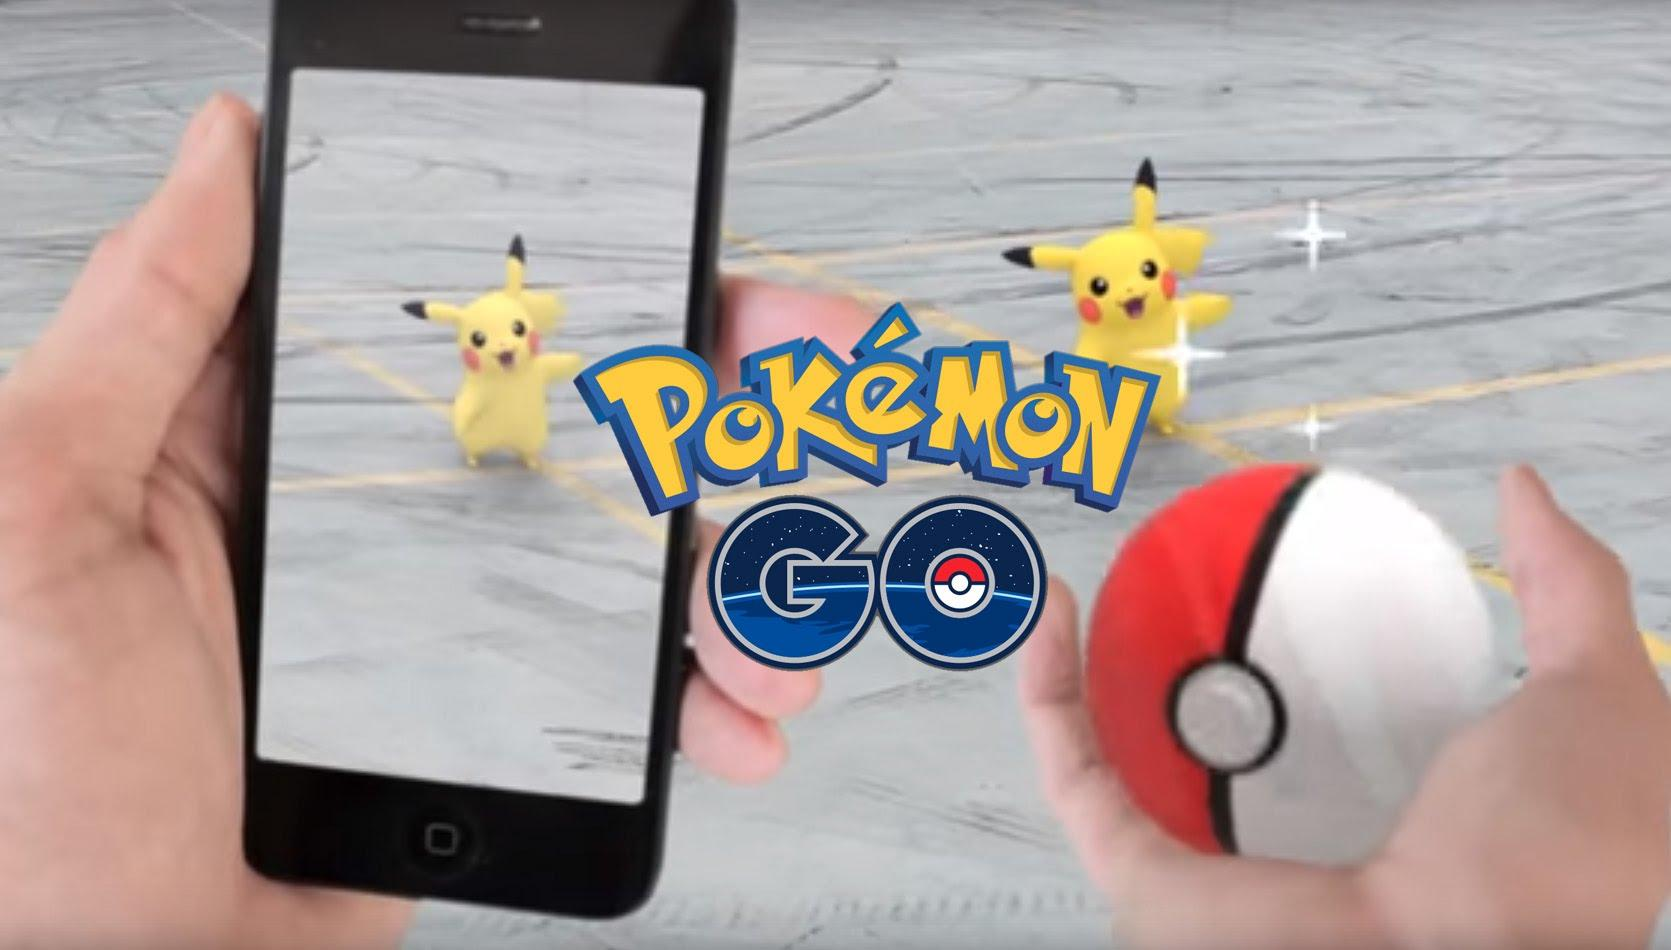 pokemon go phone app augmented reality